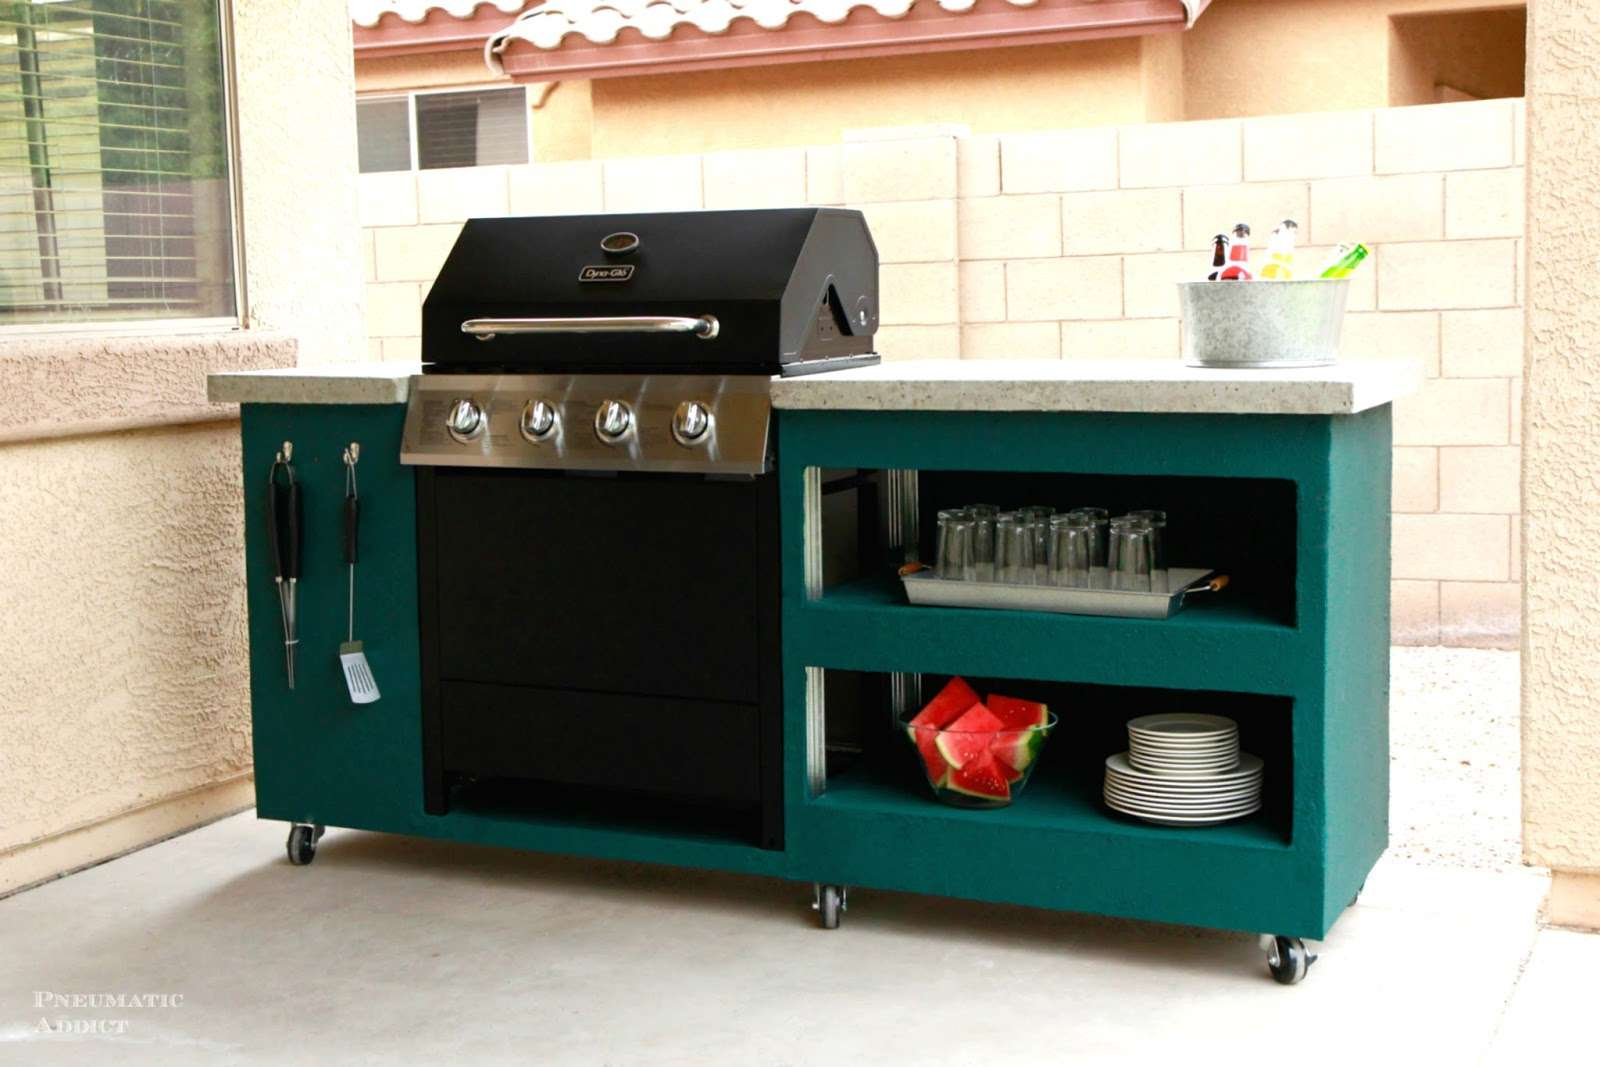 A grill with a custom surround table